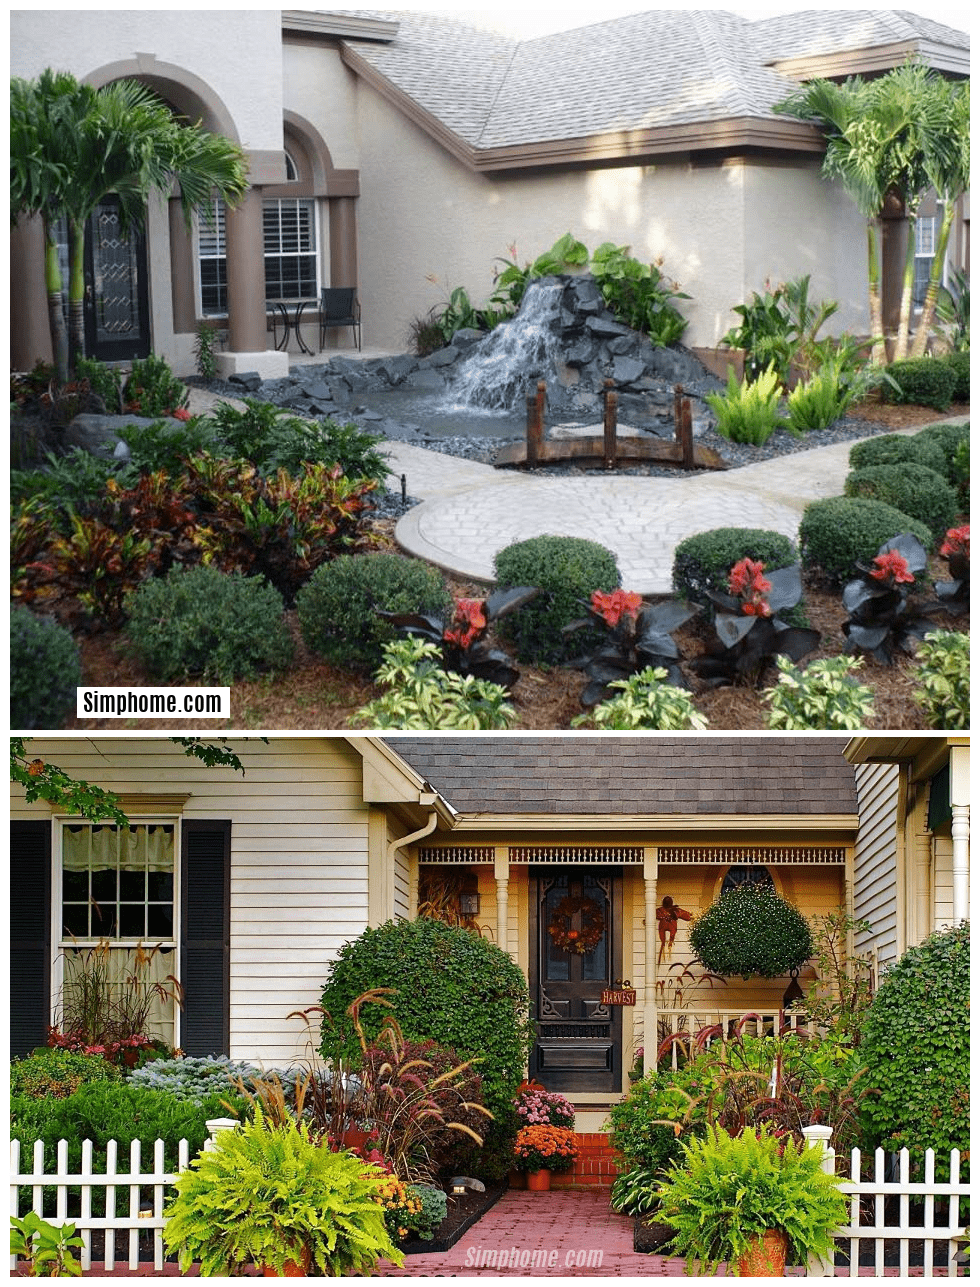 Simphome.com small front yard landscaping ideas from youtube inside gardening ideas for front yard.jpg